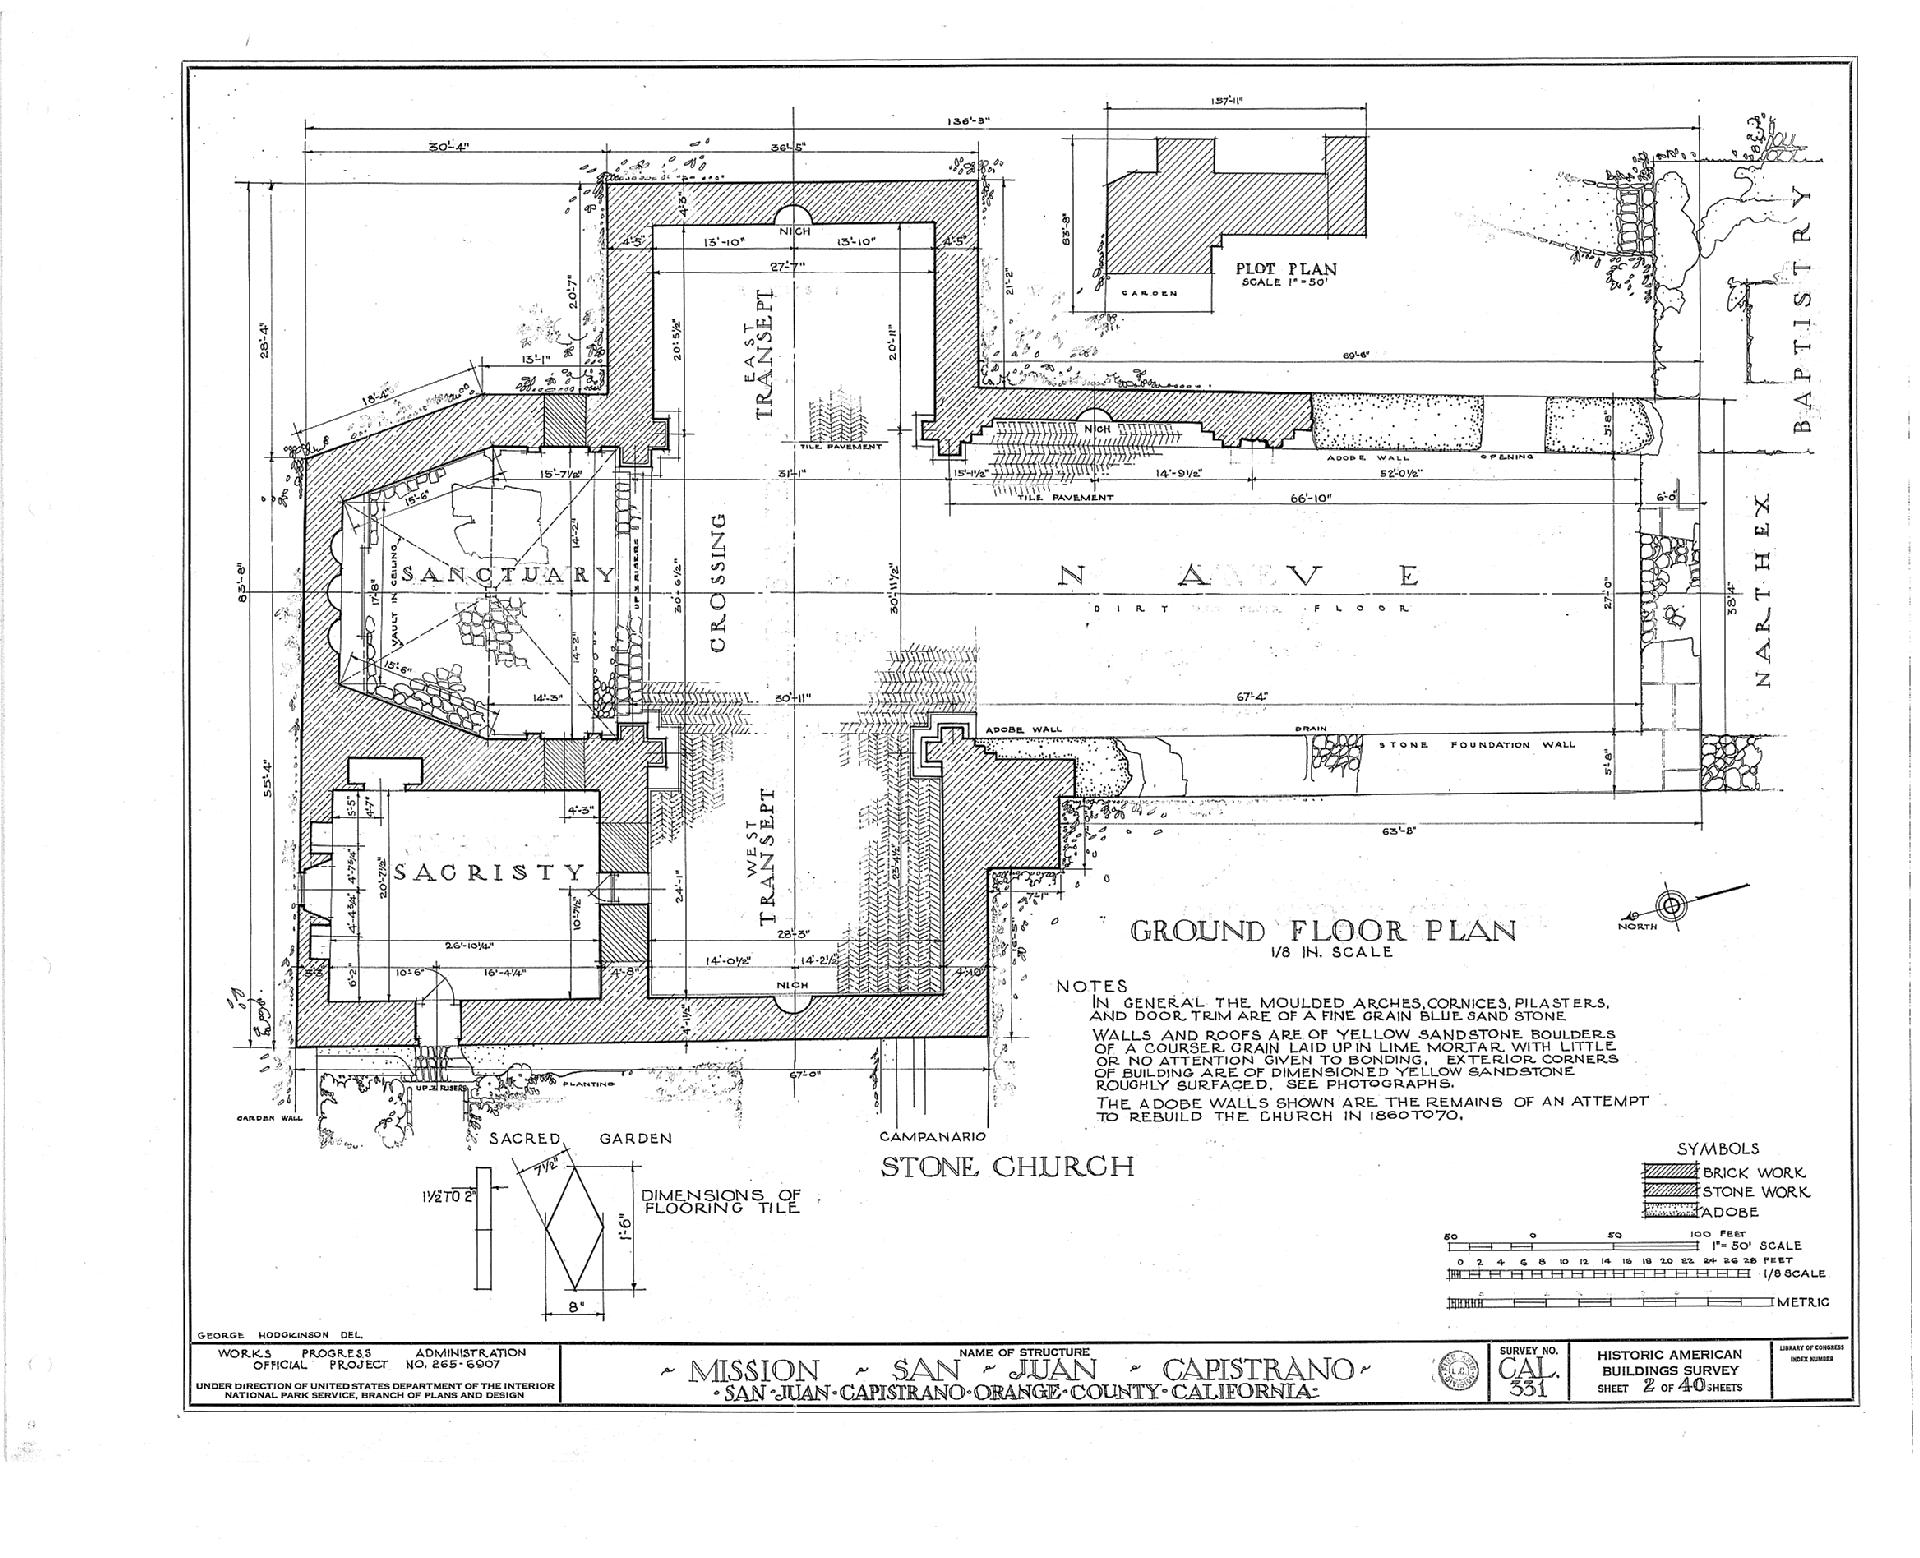 Mission San Juan Capistrano The Floor Plan Of The Great Stone Church Produced By The Historical A Mission San Juan Capistrano Floor Plans San Juan Capistrano